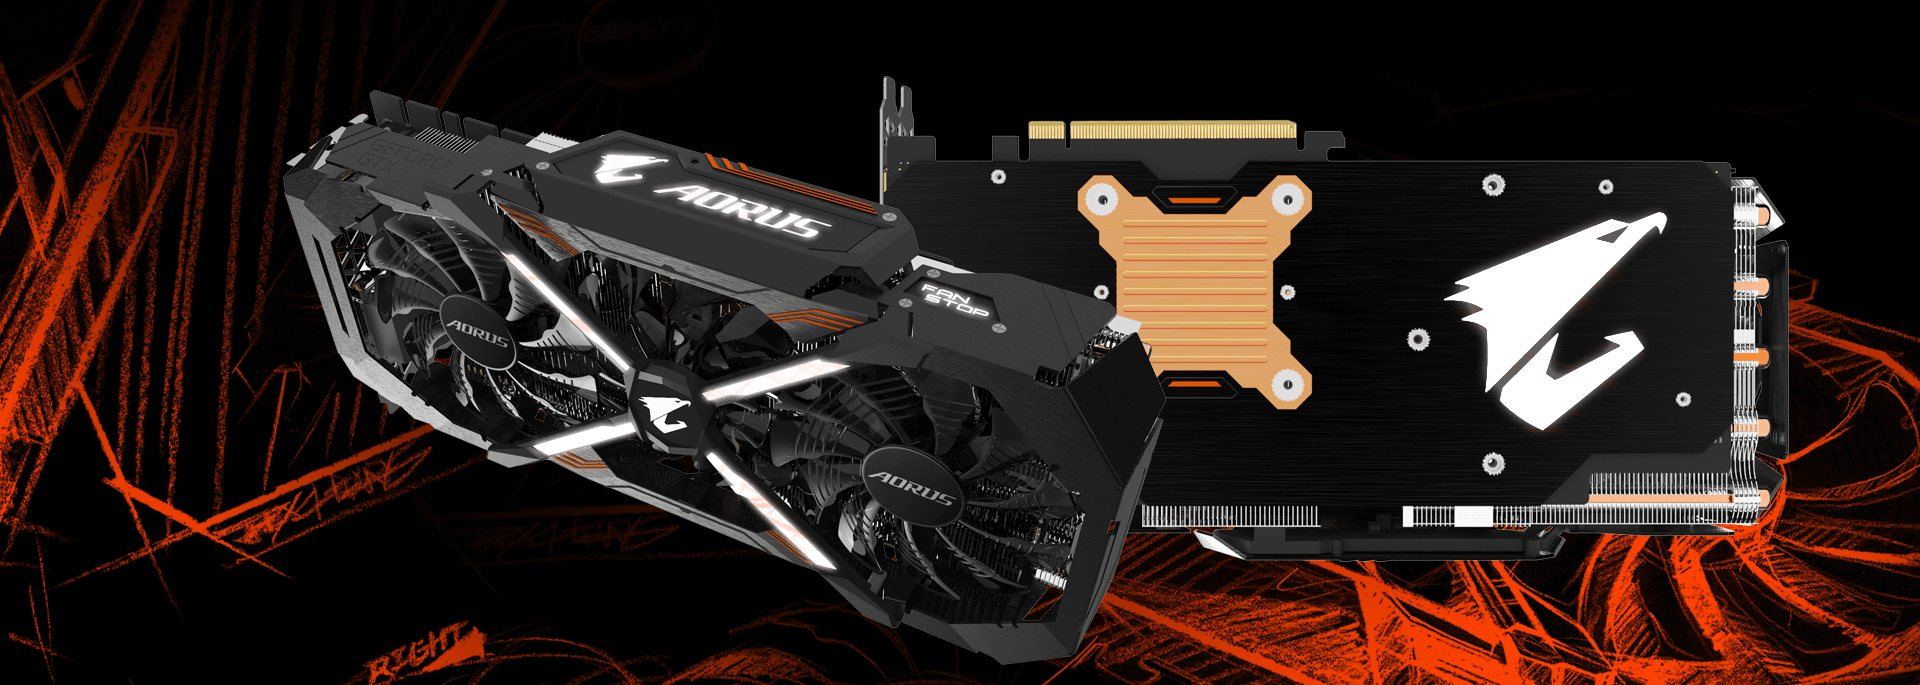 Aorus Geforce Gtx 1080 Ti Xtreme Edition 11g Graphics Card Asus 11gb Ddr5x Rog Poseidon Cycling Smoothly Cycles Through All Colors